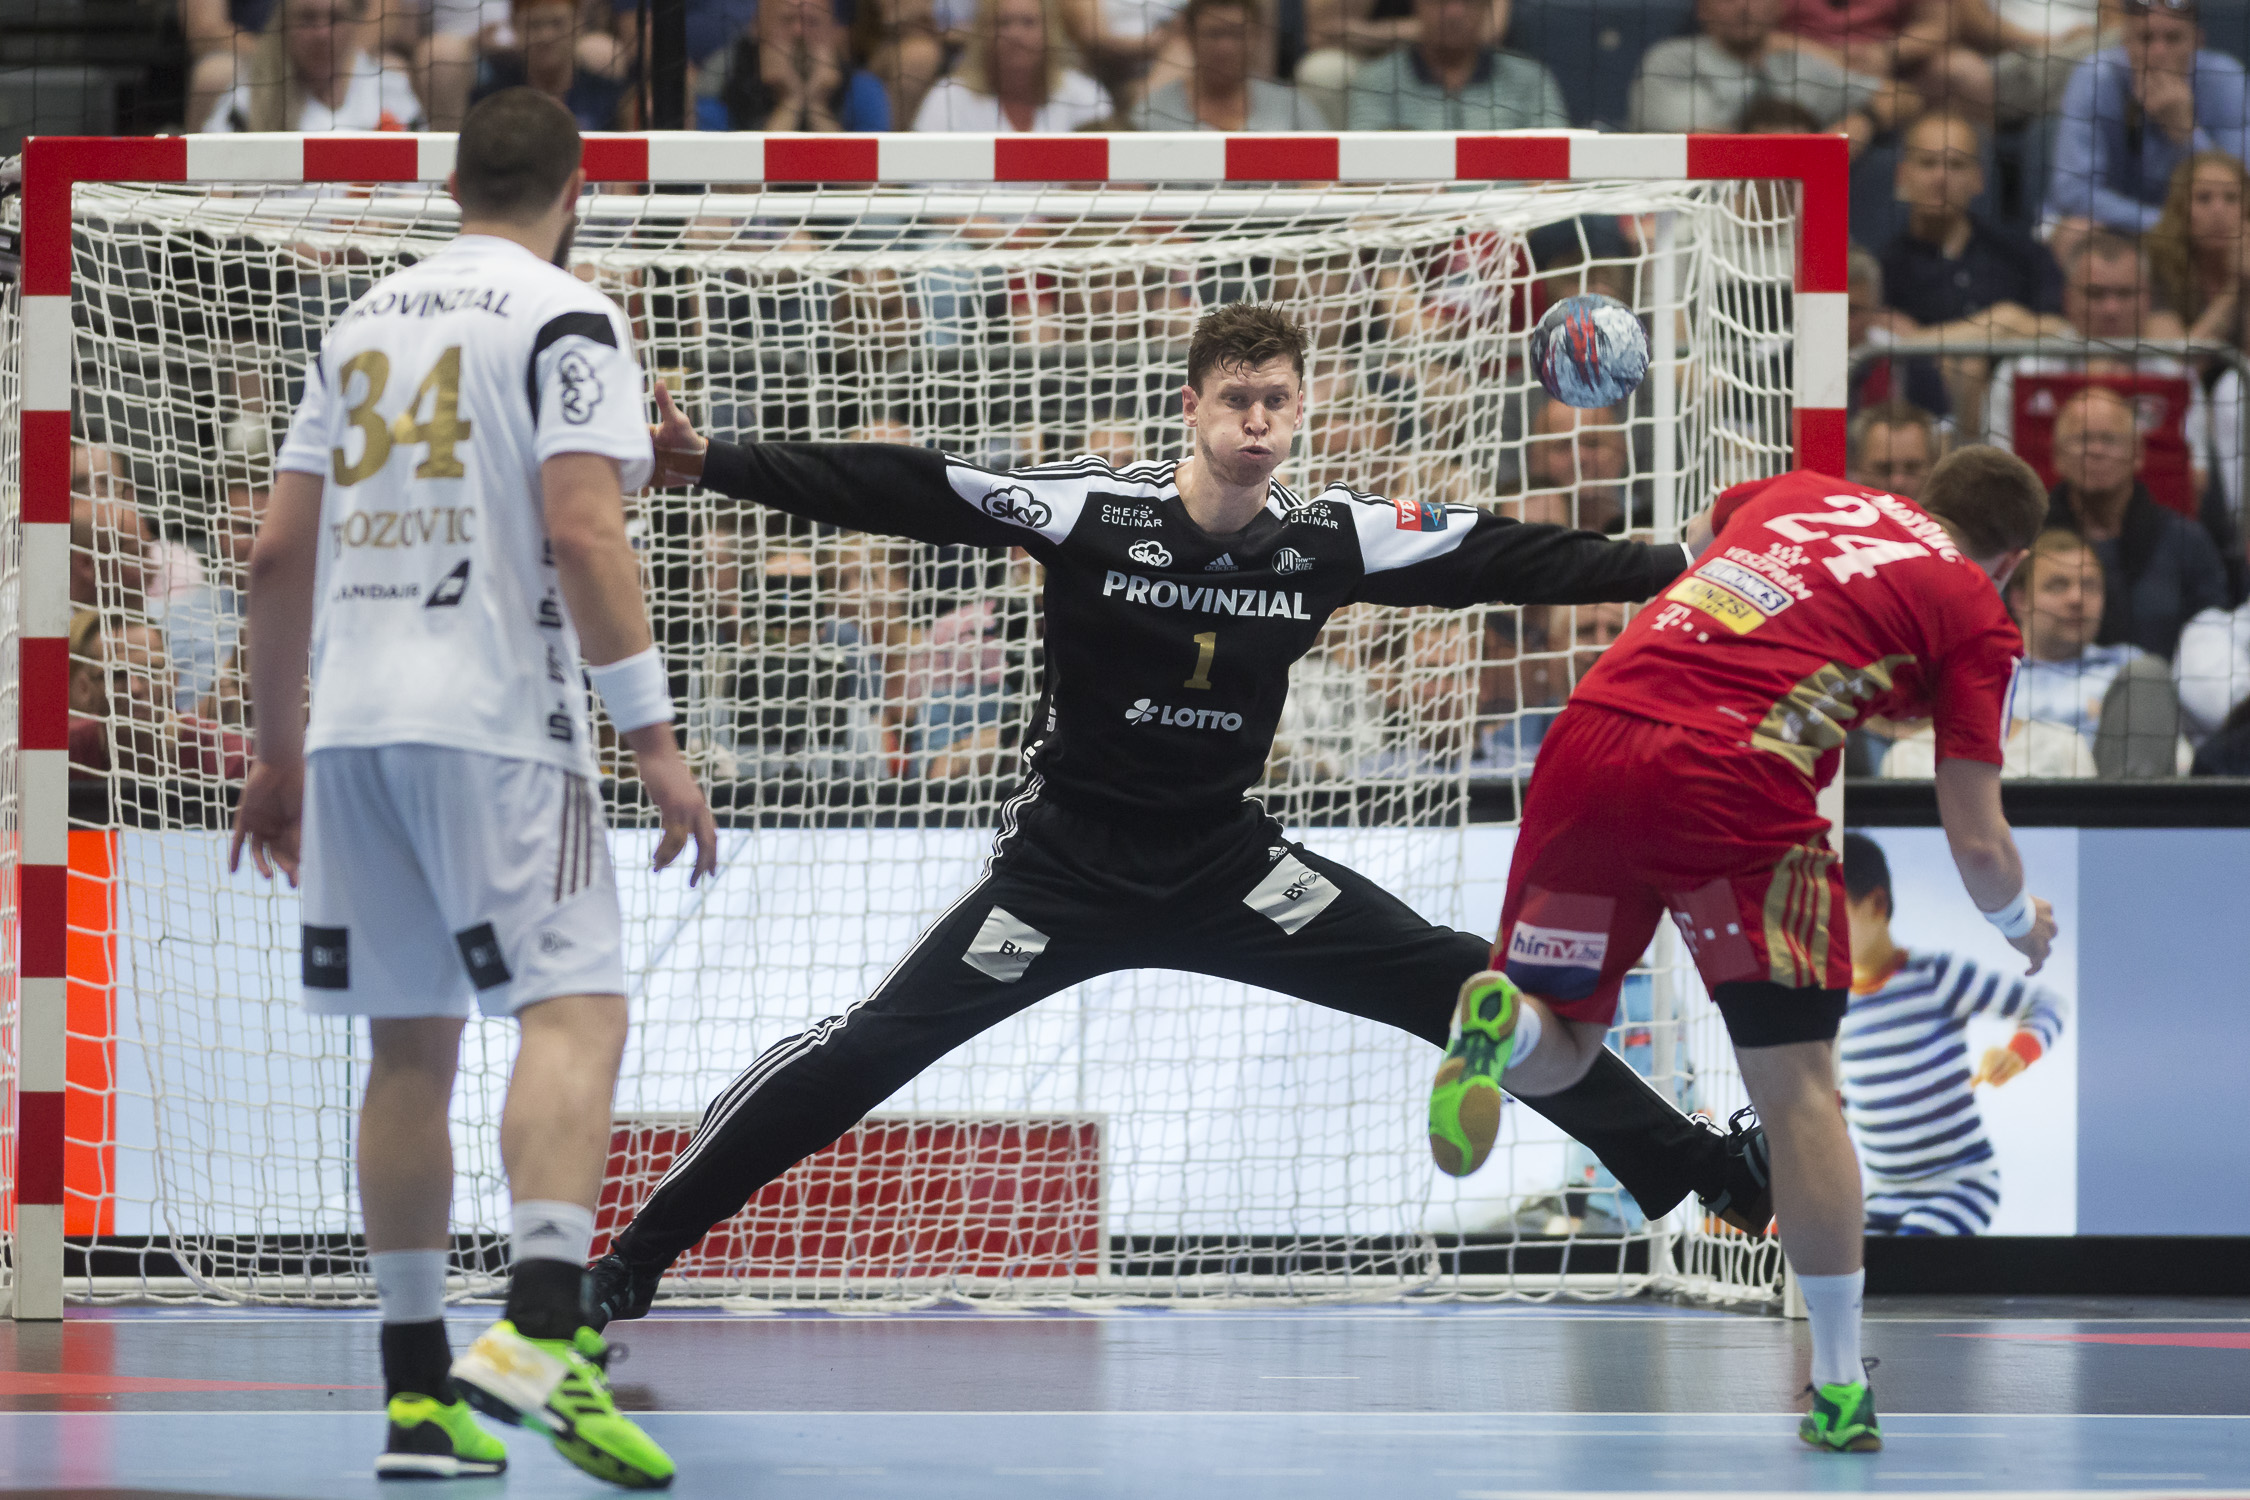 Portfolio(20160528 – EHF Final Four – 2HF Kiel vs Veszprem – 134 (20160528 – Final4 – 1004 (6V0A9843)))